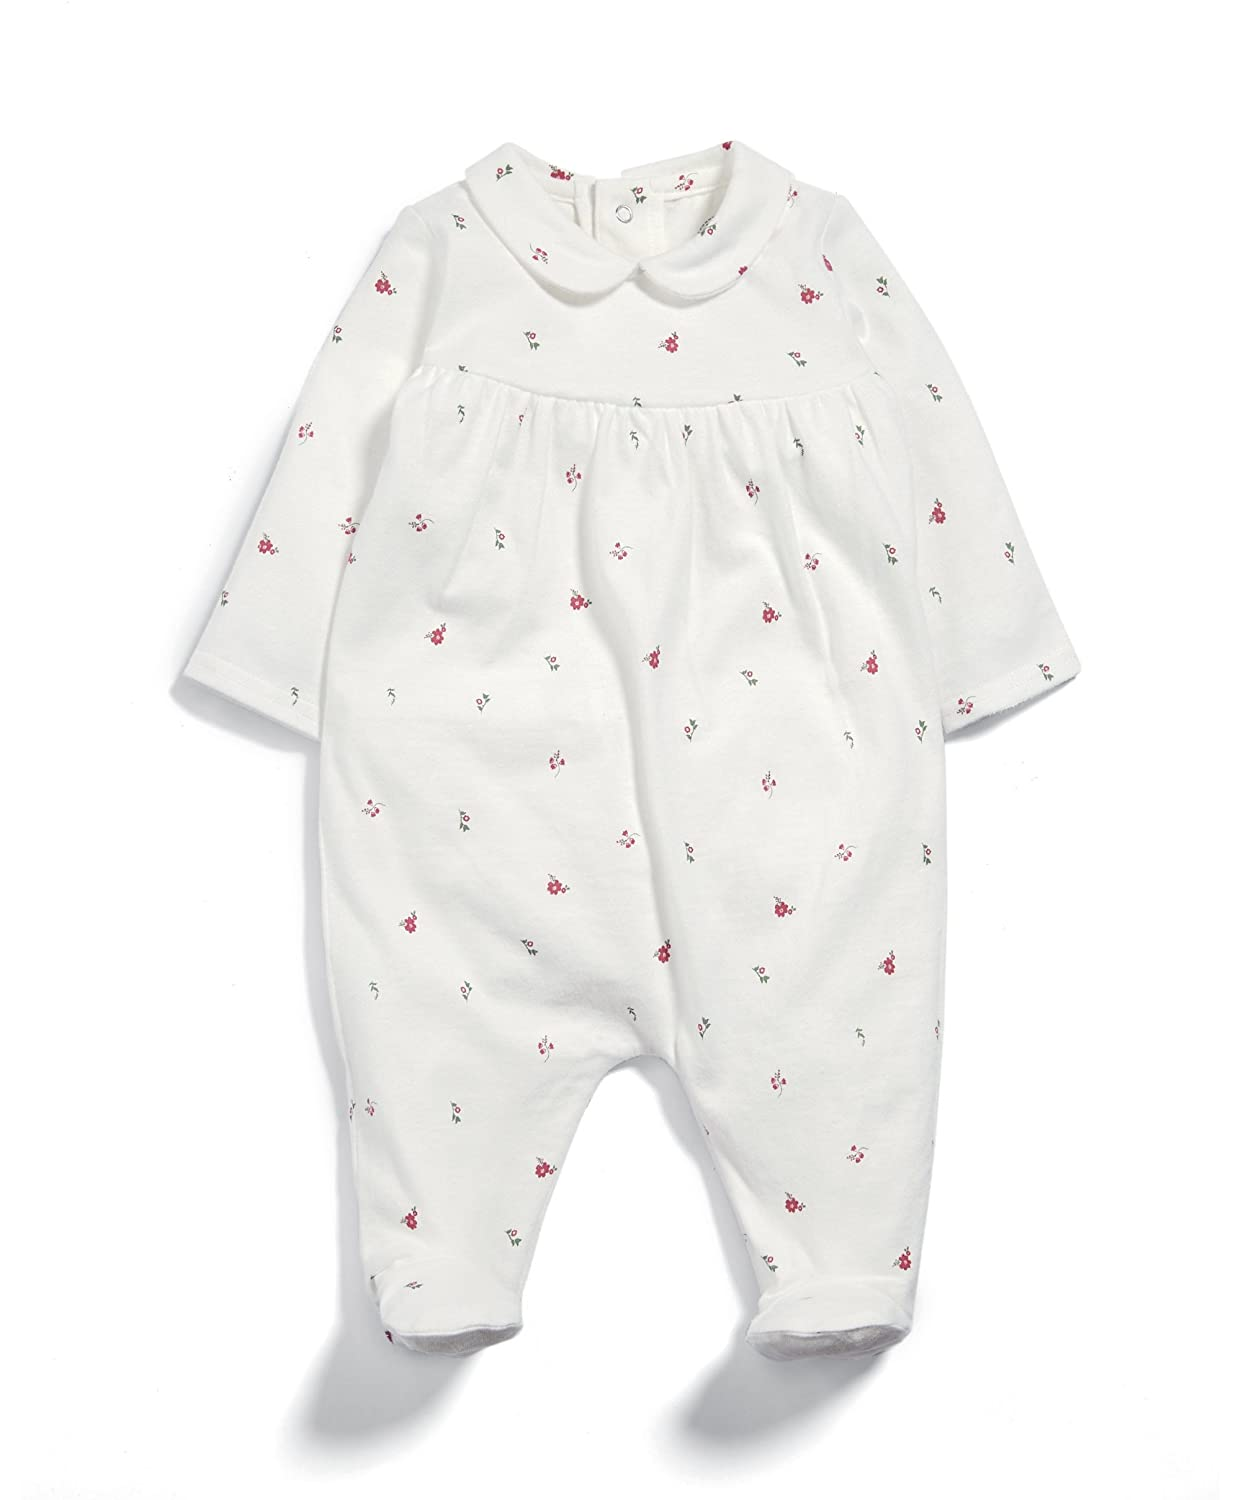 Mamas & Papas Baby Girls' Ditsy Print Collar All in One Sleepsuits Mamas and Papas